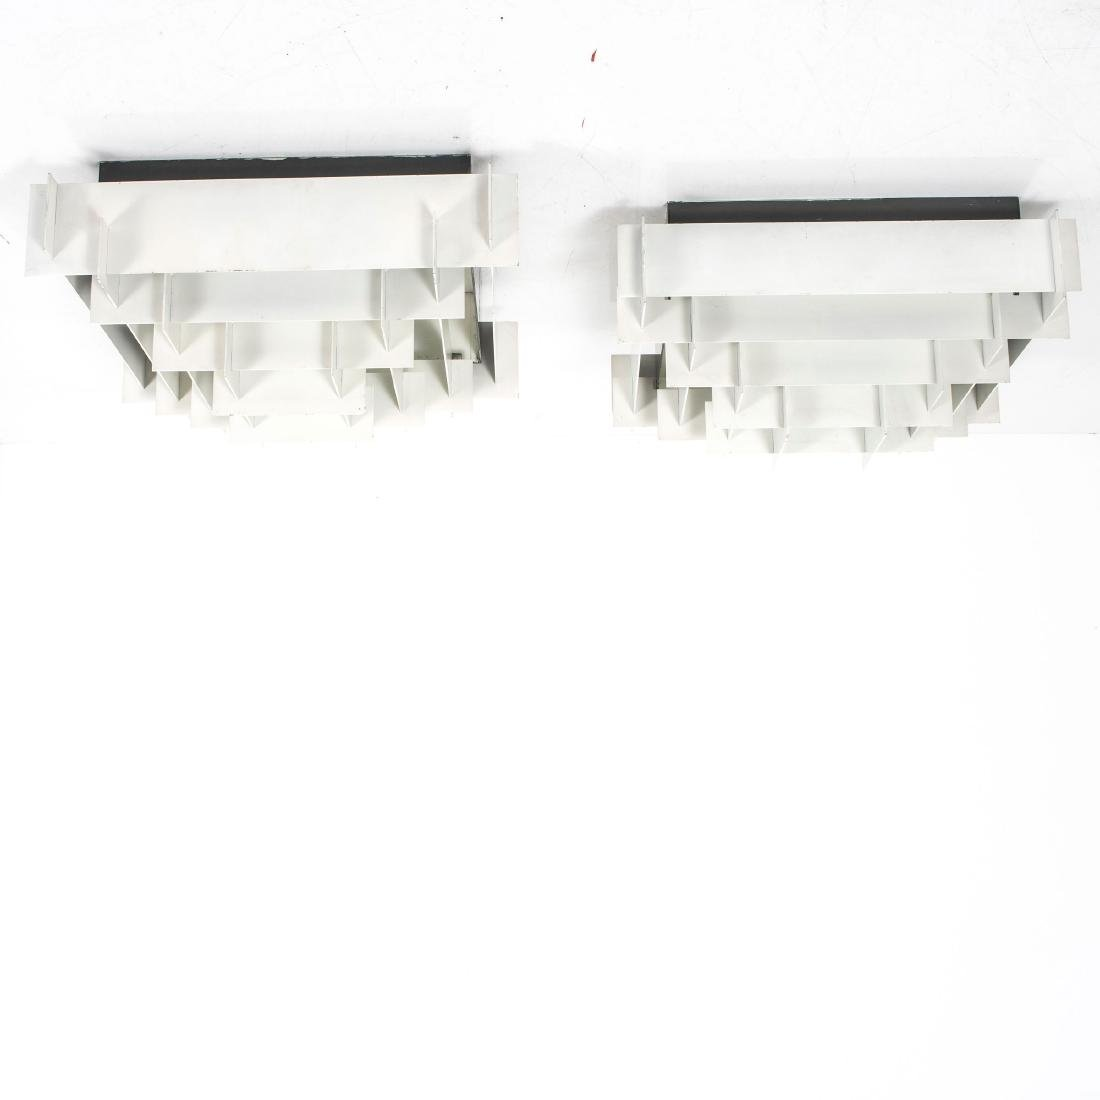 Two ceiling lights, 1960s - 3